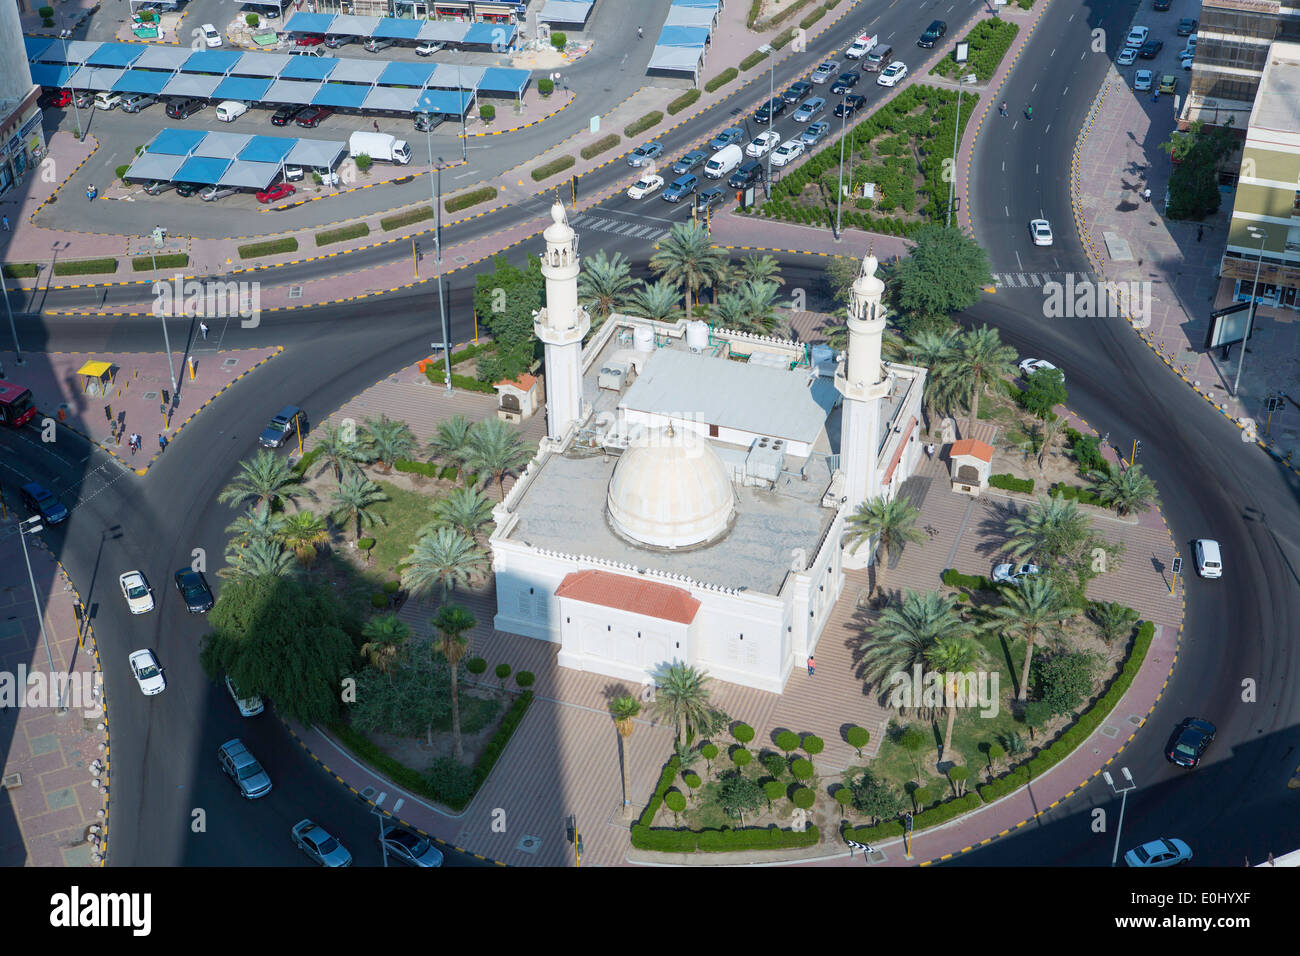 Arabian Peninsula, Kuwait, city centre Mosque, elevated view - Stock Image